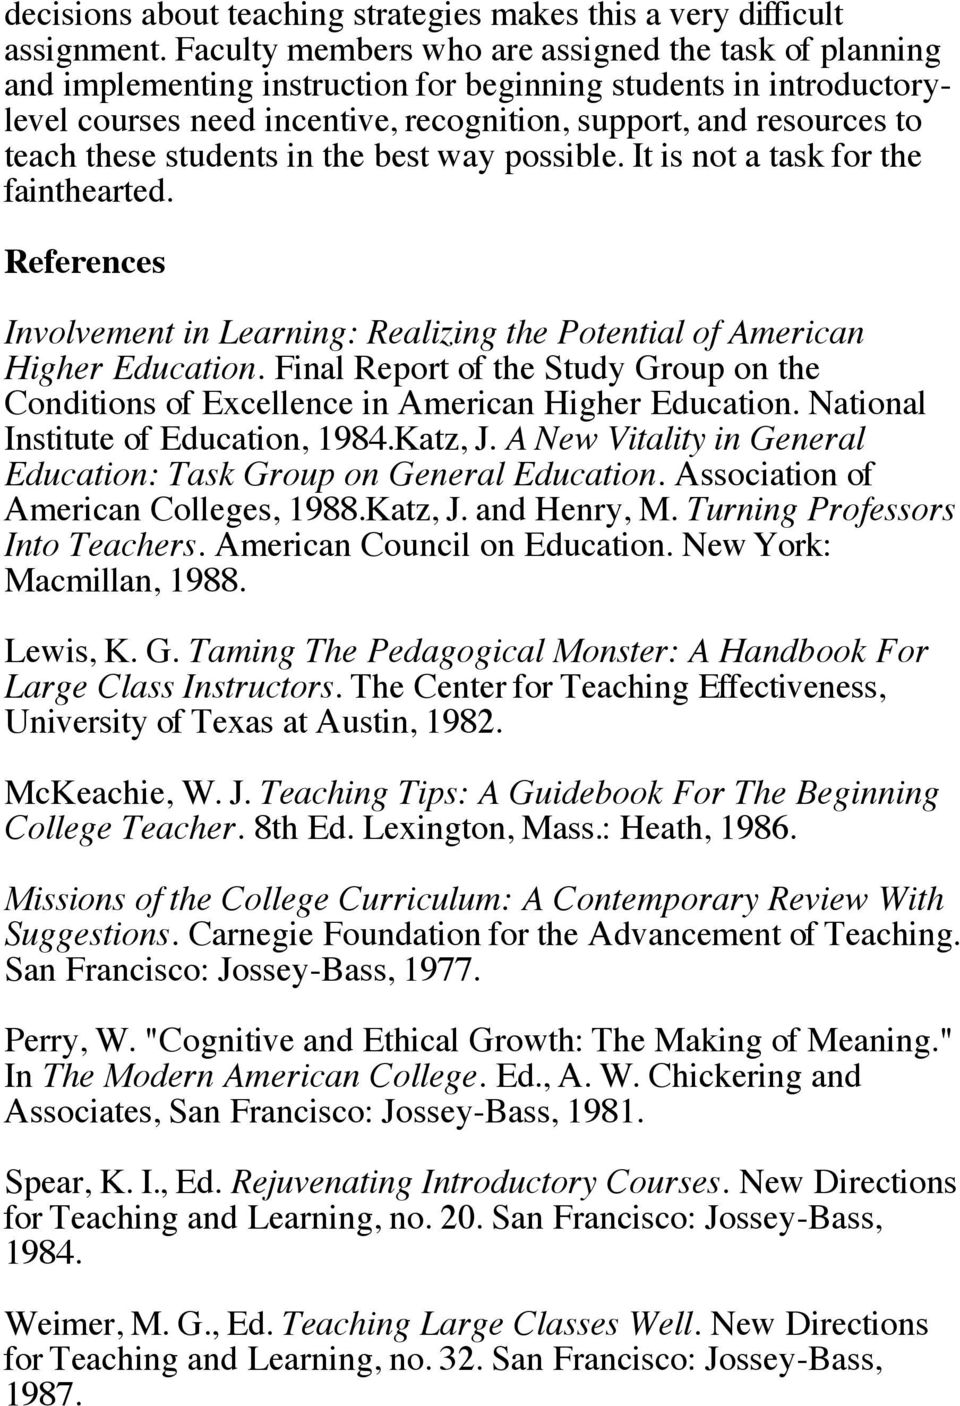 these students in the best way possible. It is not a task for the fainthearted. References Involvement in Learning: Realizing the Potential of American Higher Education.